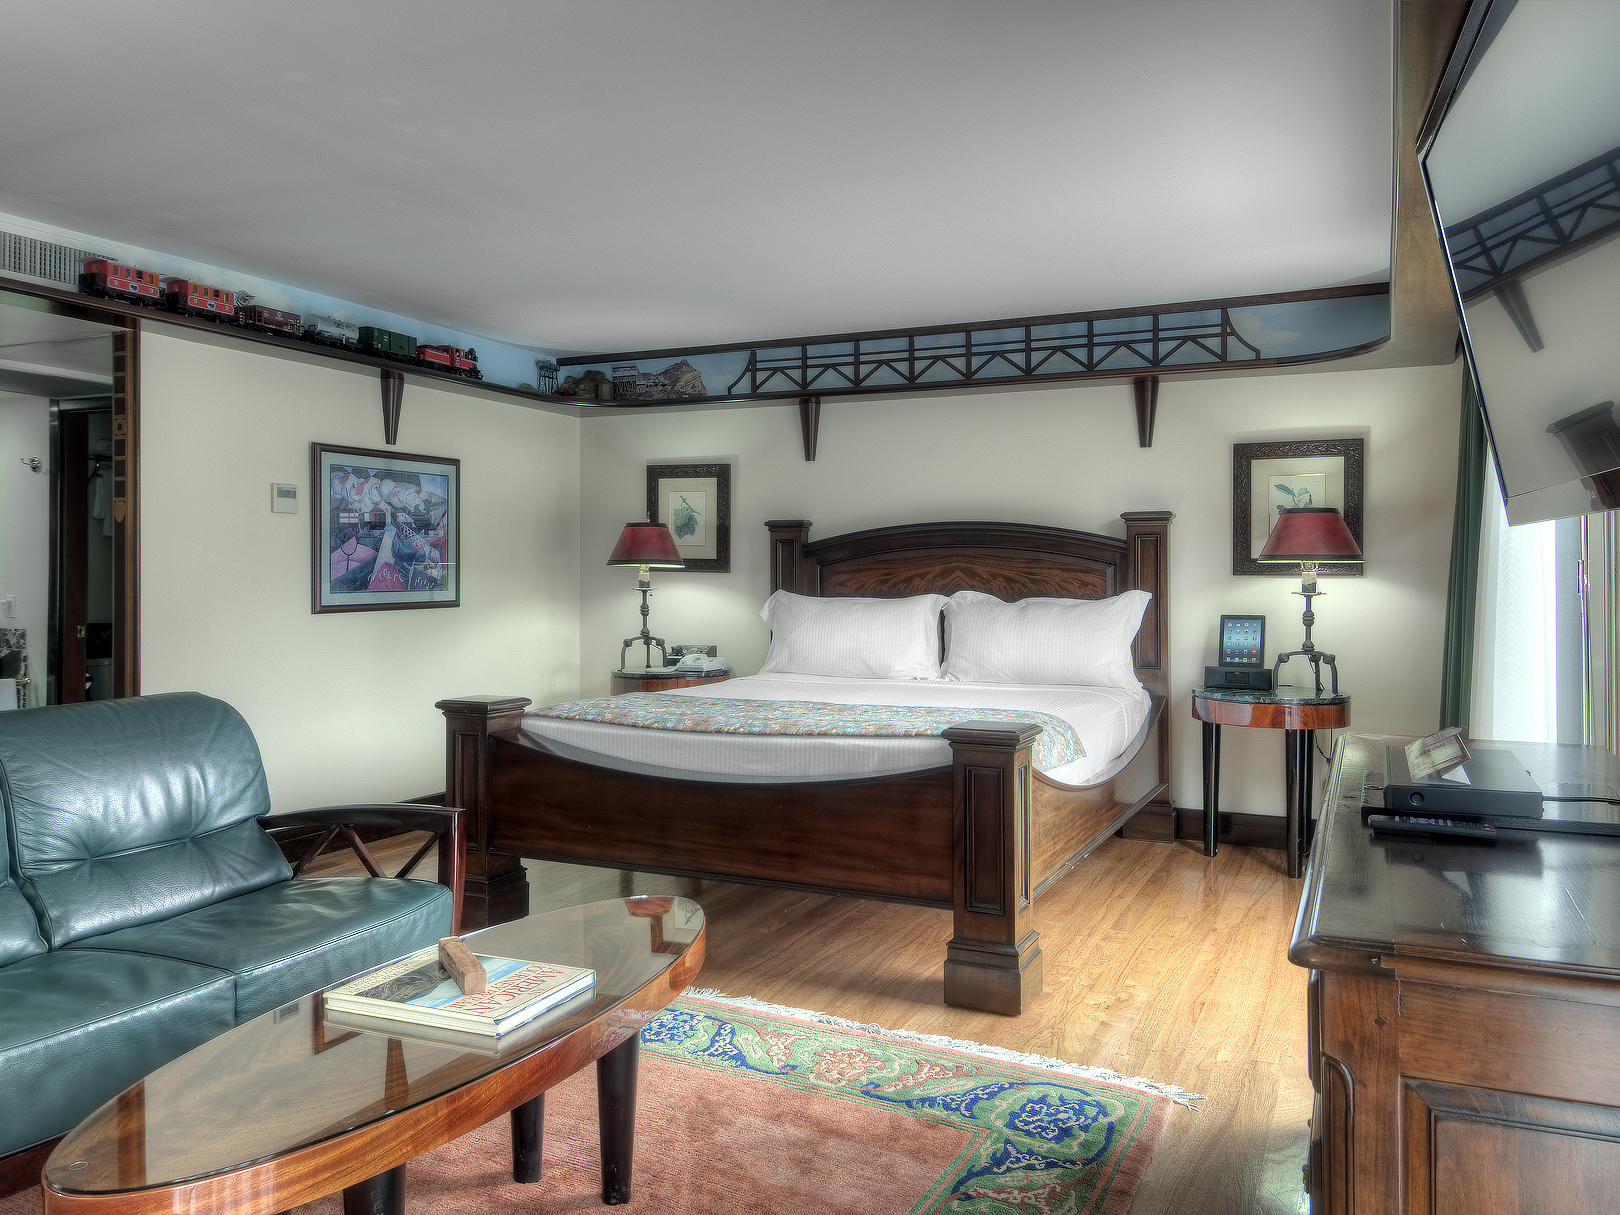 bedroom suite with blue couch and carpet